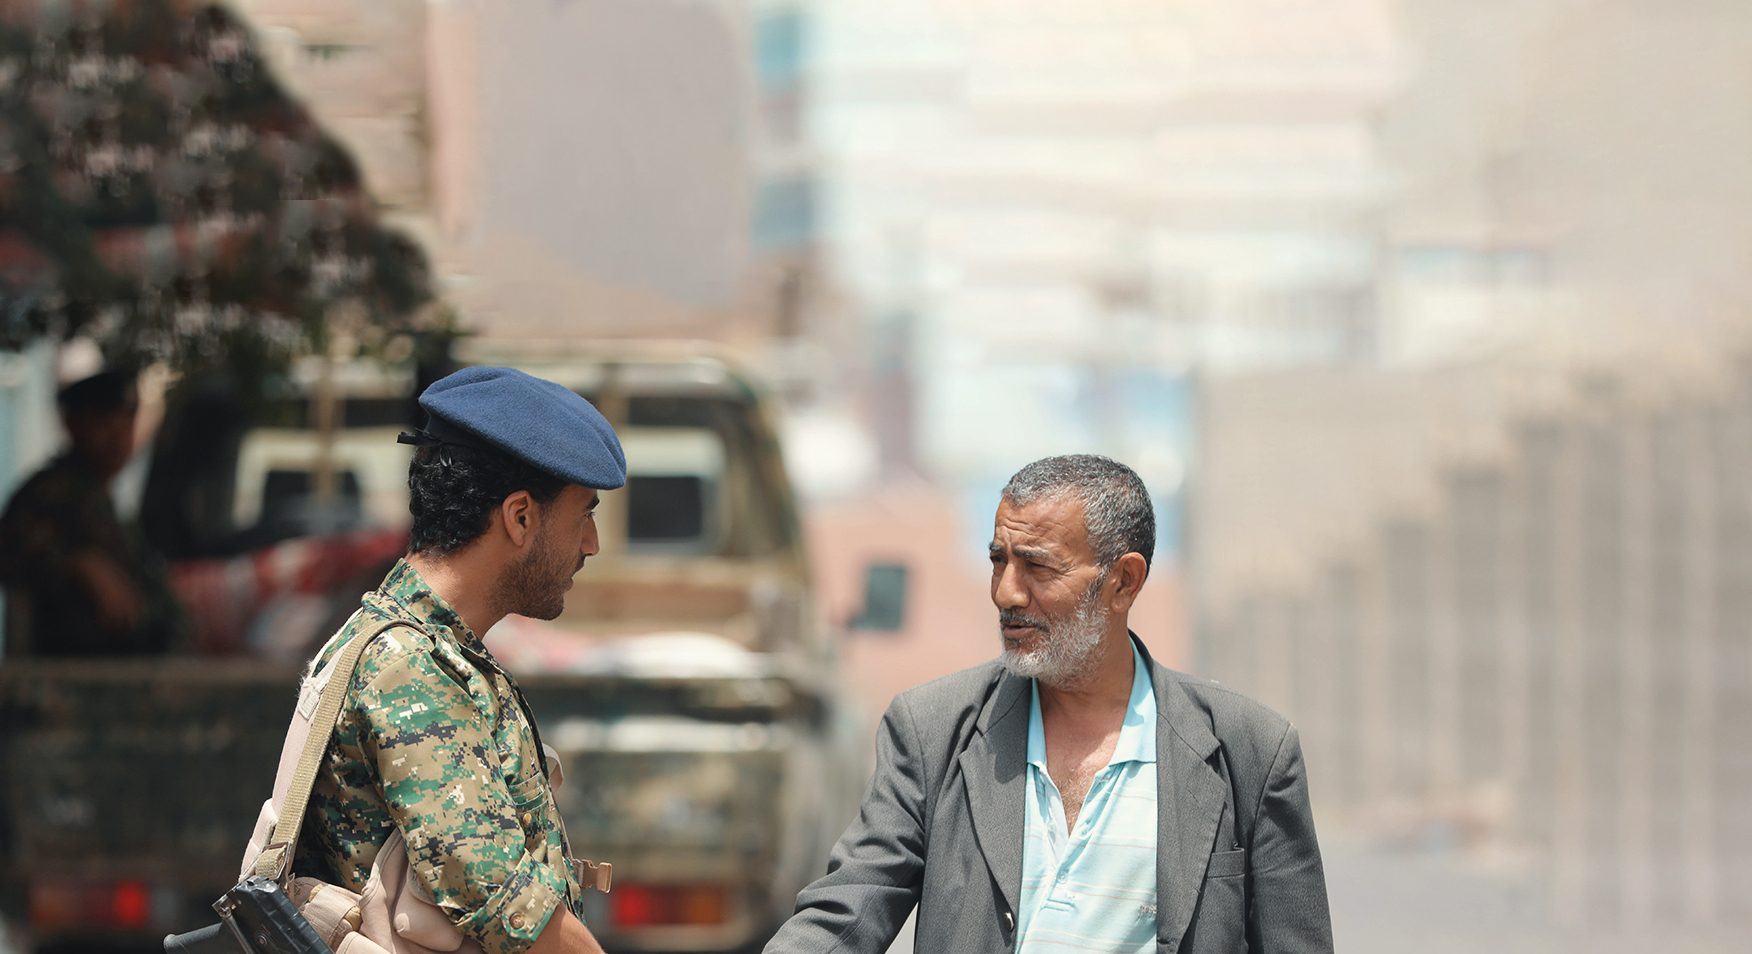 The Role of Yemeni Civil Society in Shaping Security